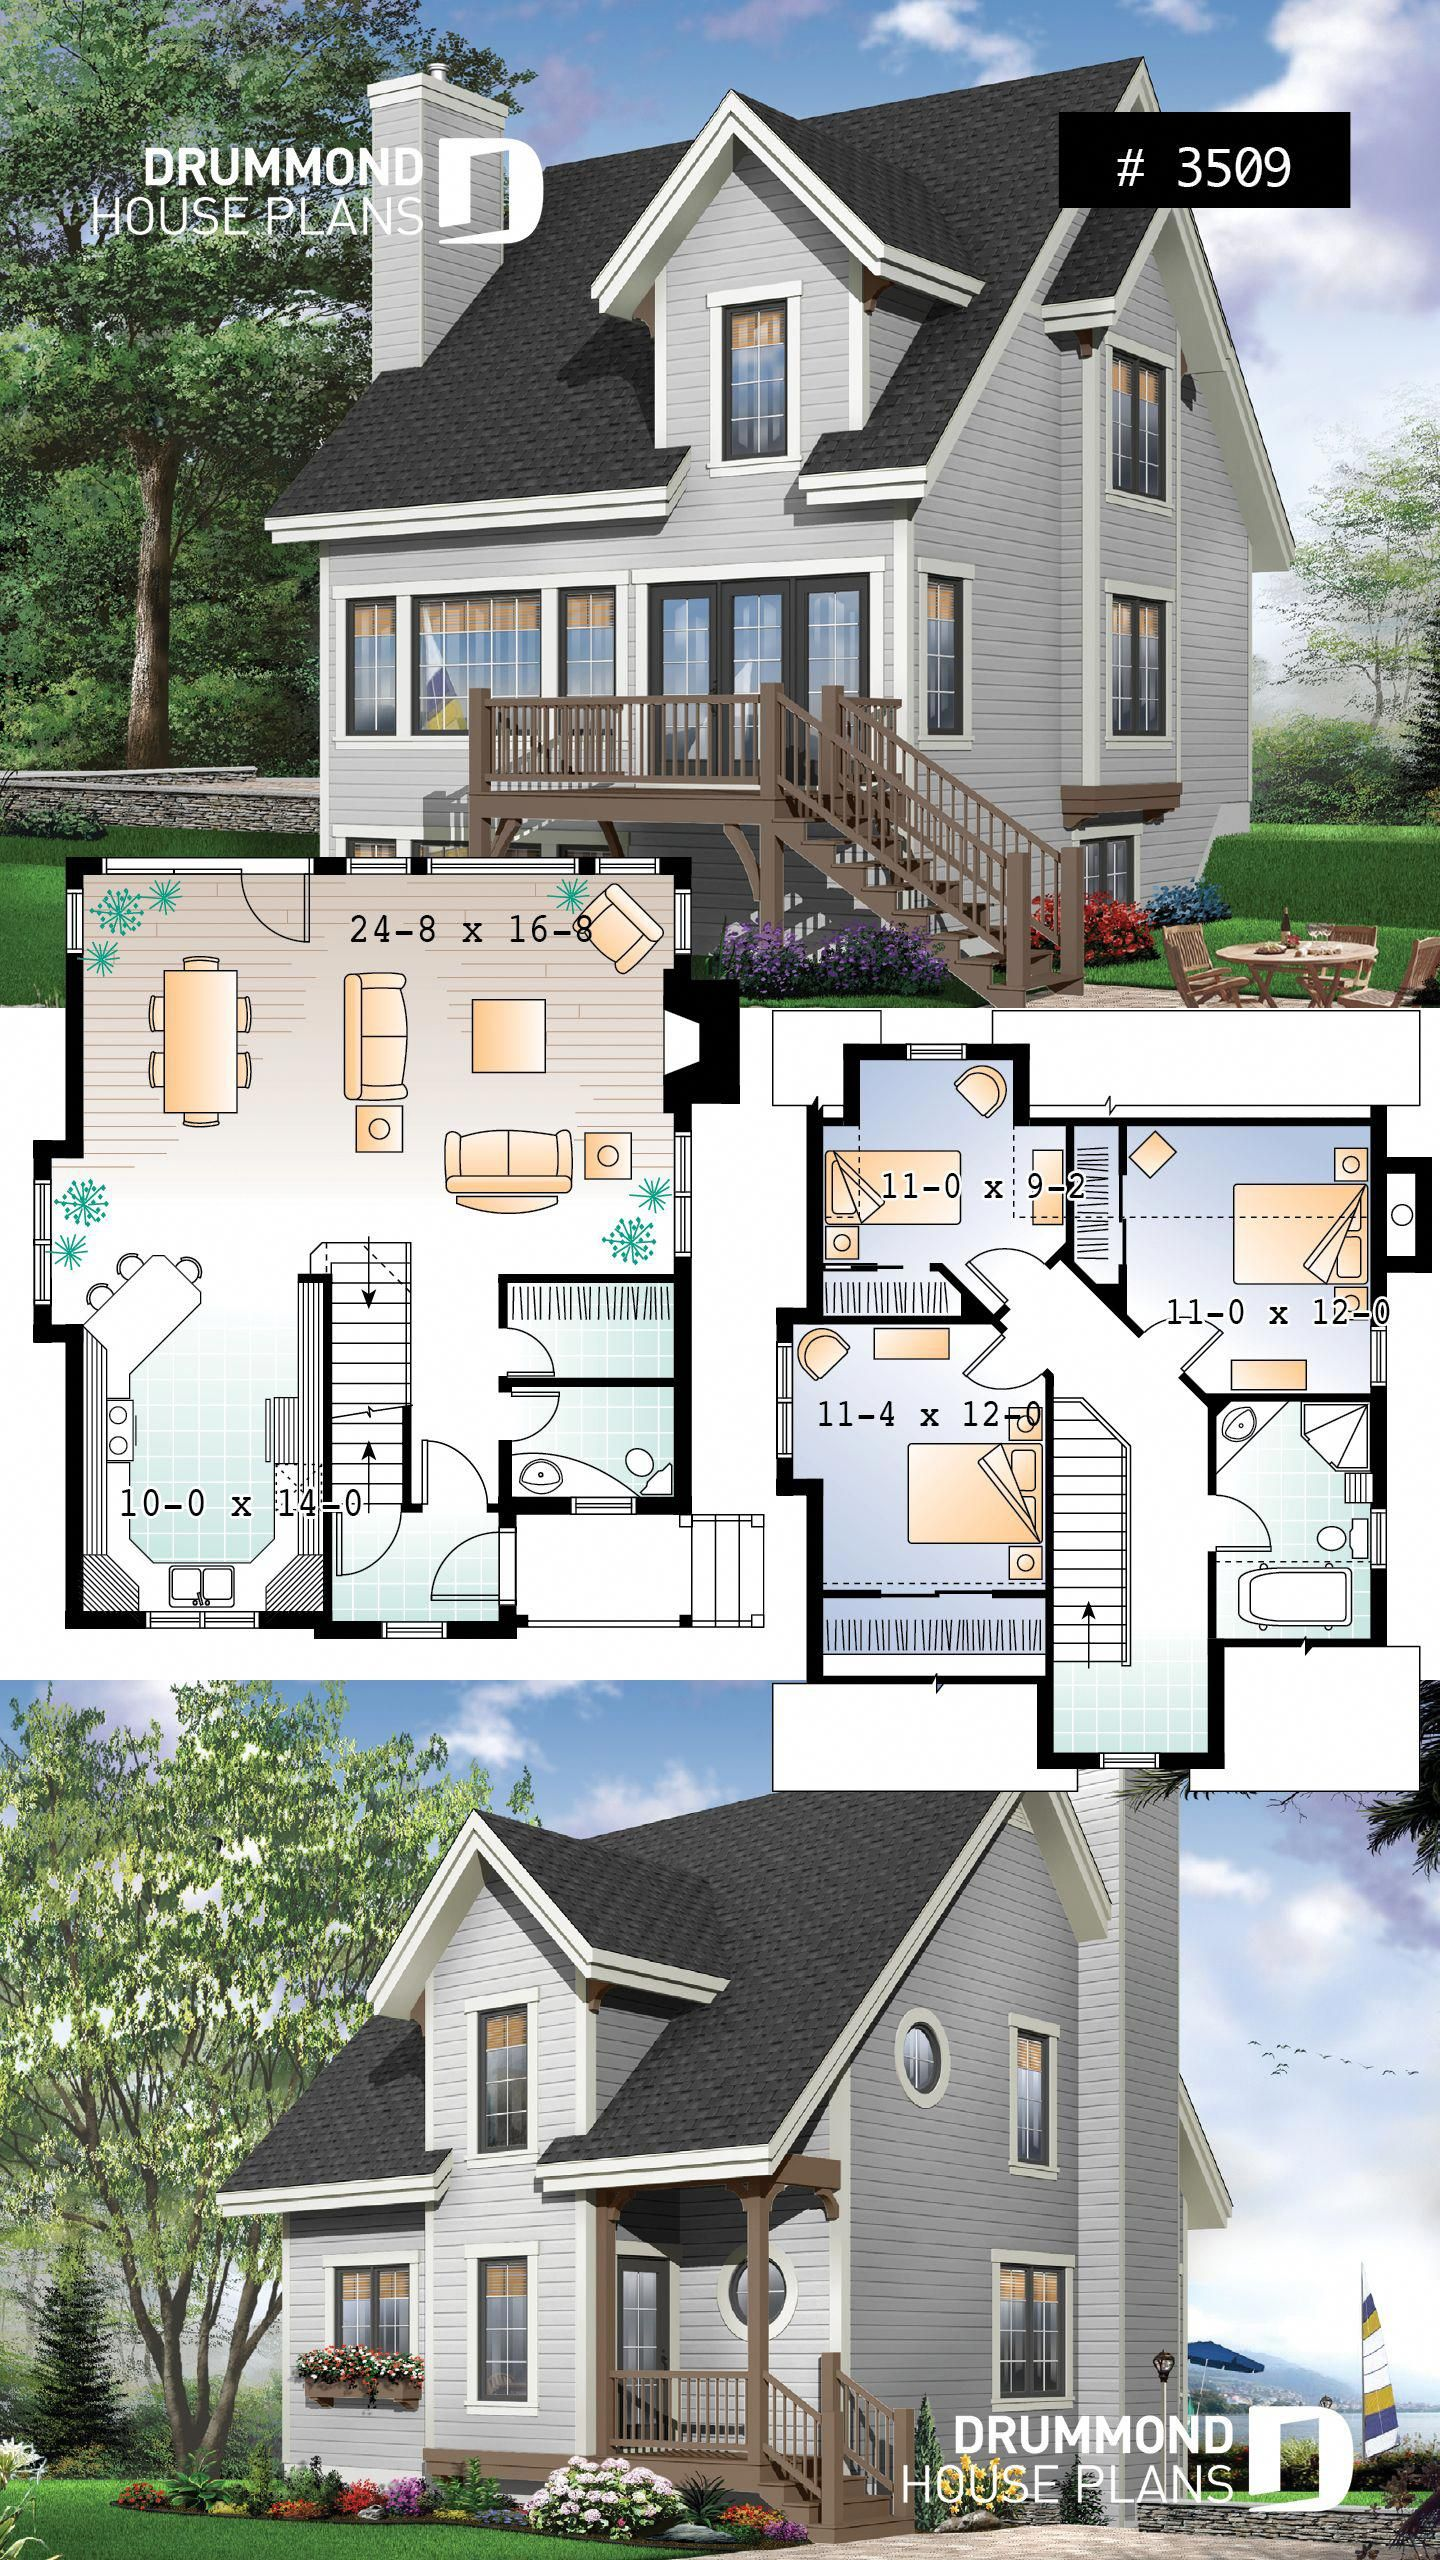 Wow Check Out This Neat Photo What An Artistic Style Cottageplans Sims House Plans House Plans Sims House Design